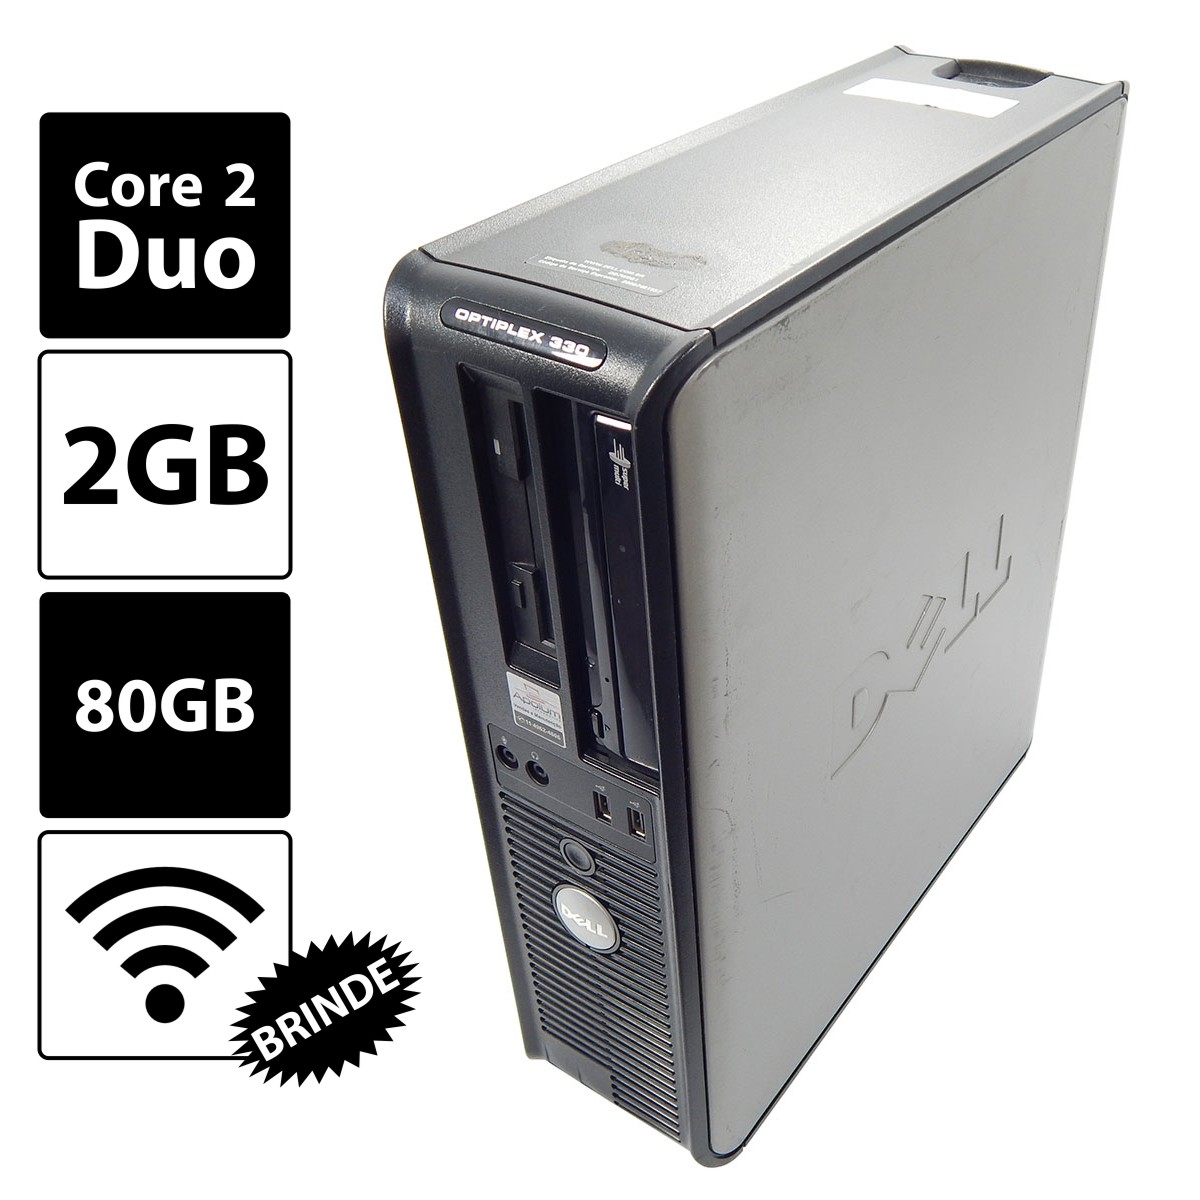 PC Dell Optiplex 330 C2D E6550/2G/80